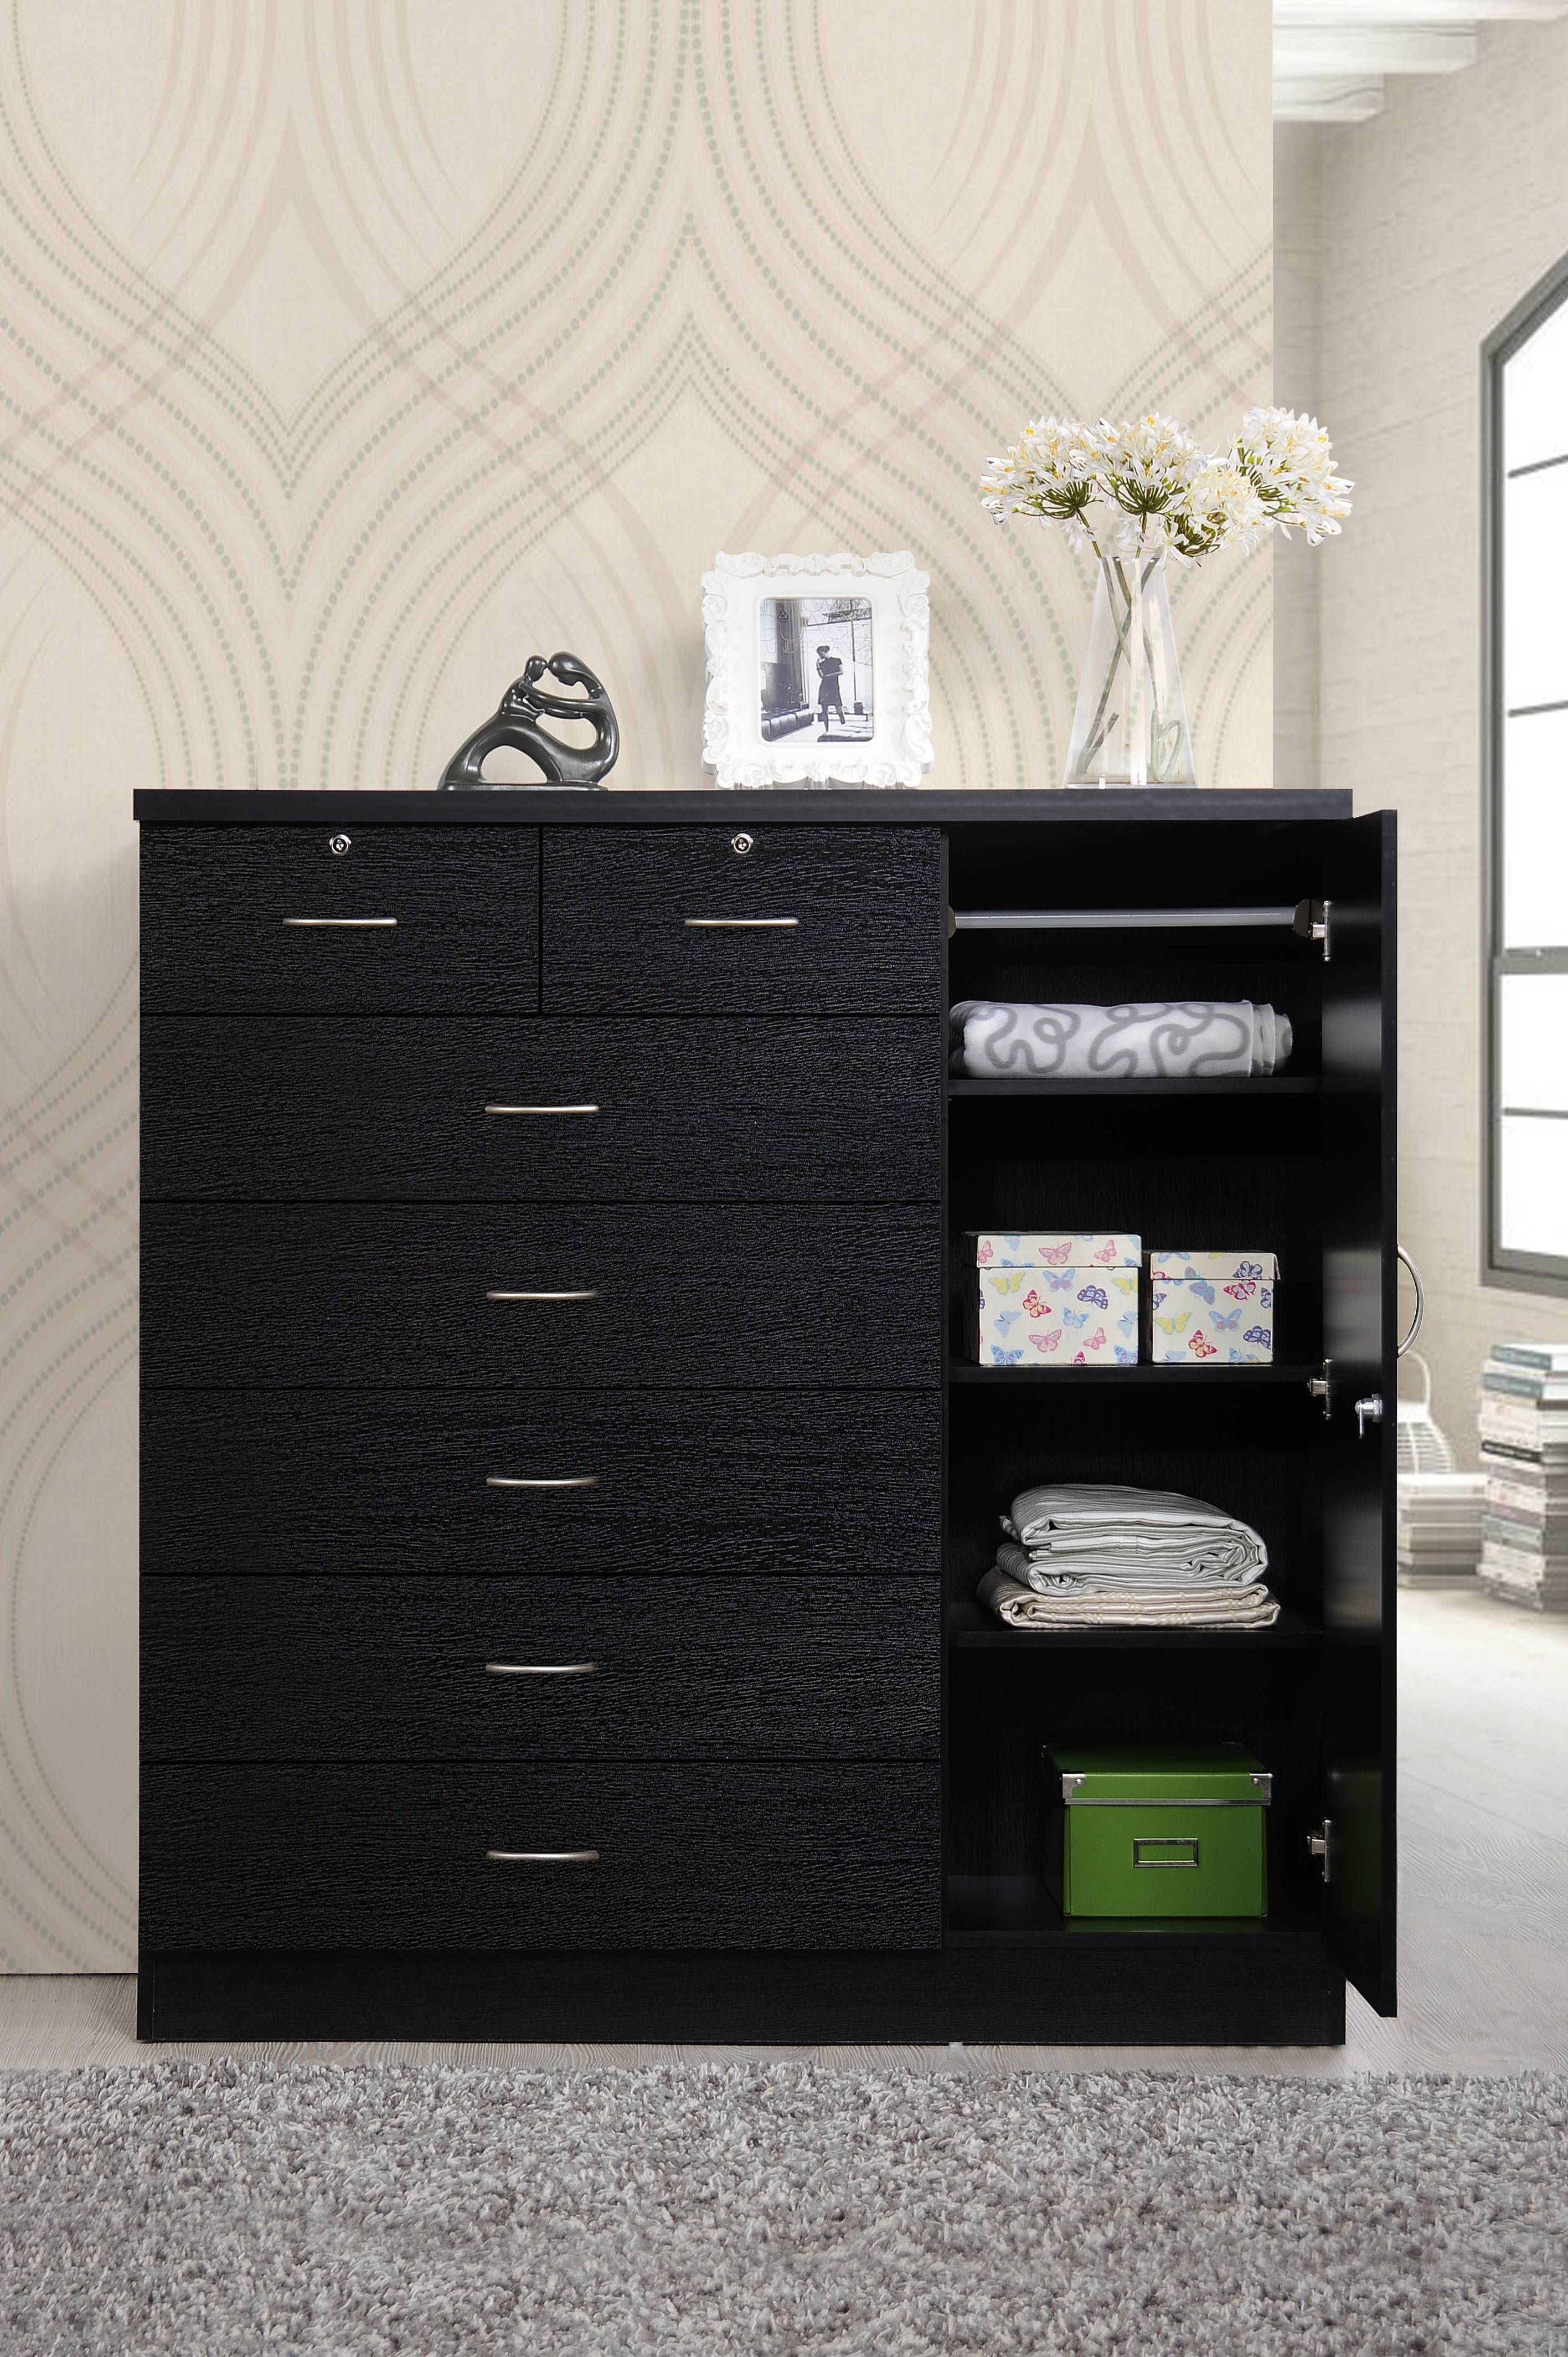 Chest Of Drawers Furniture Bedroom Dresser Storage Cabinet Clothes Organizer